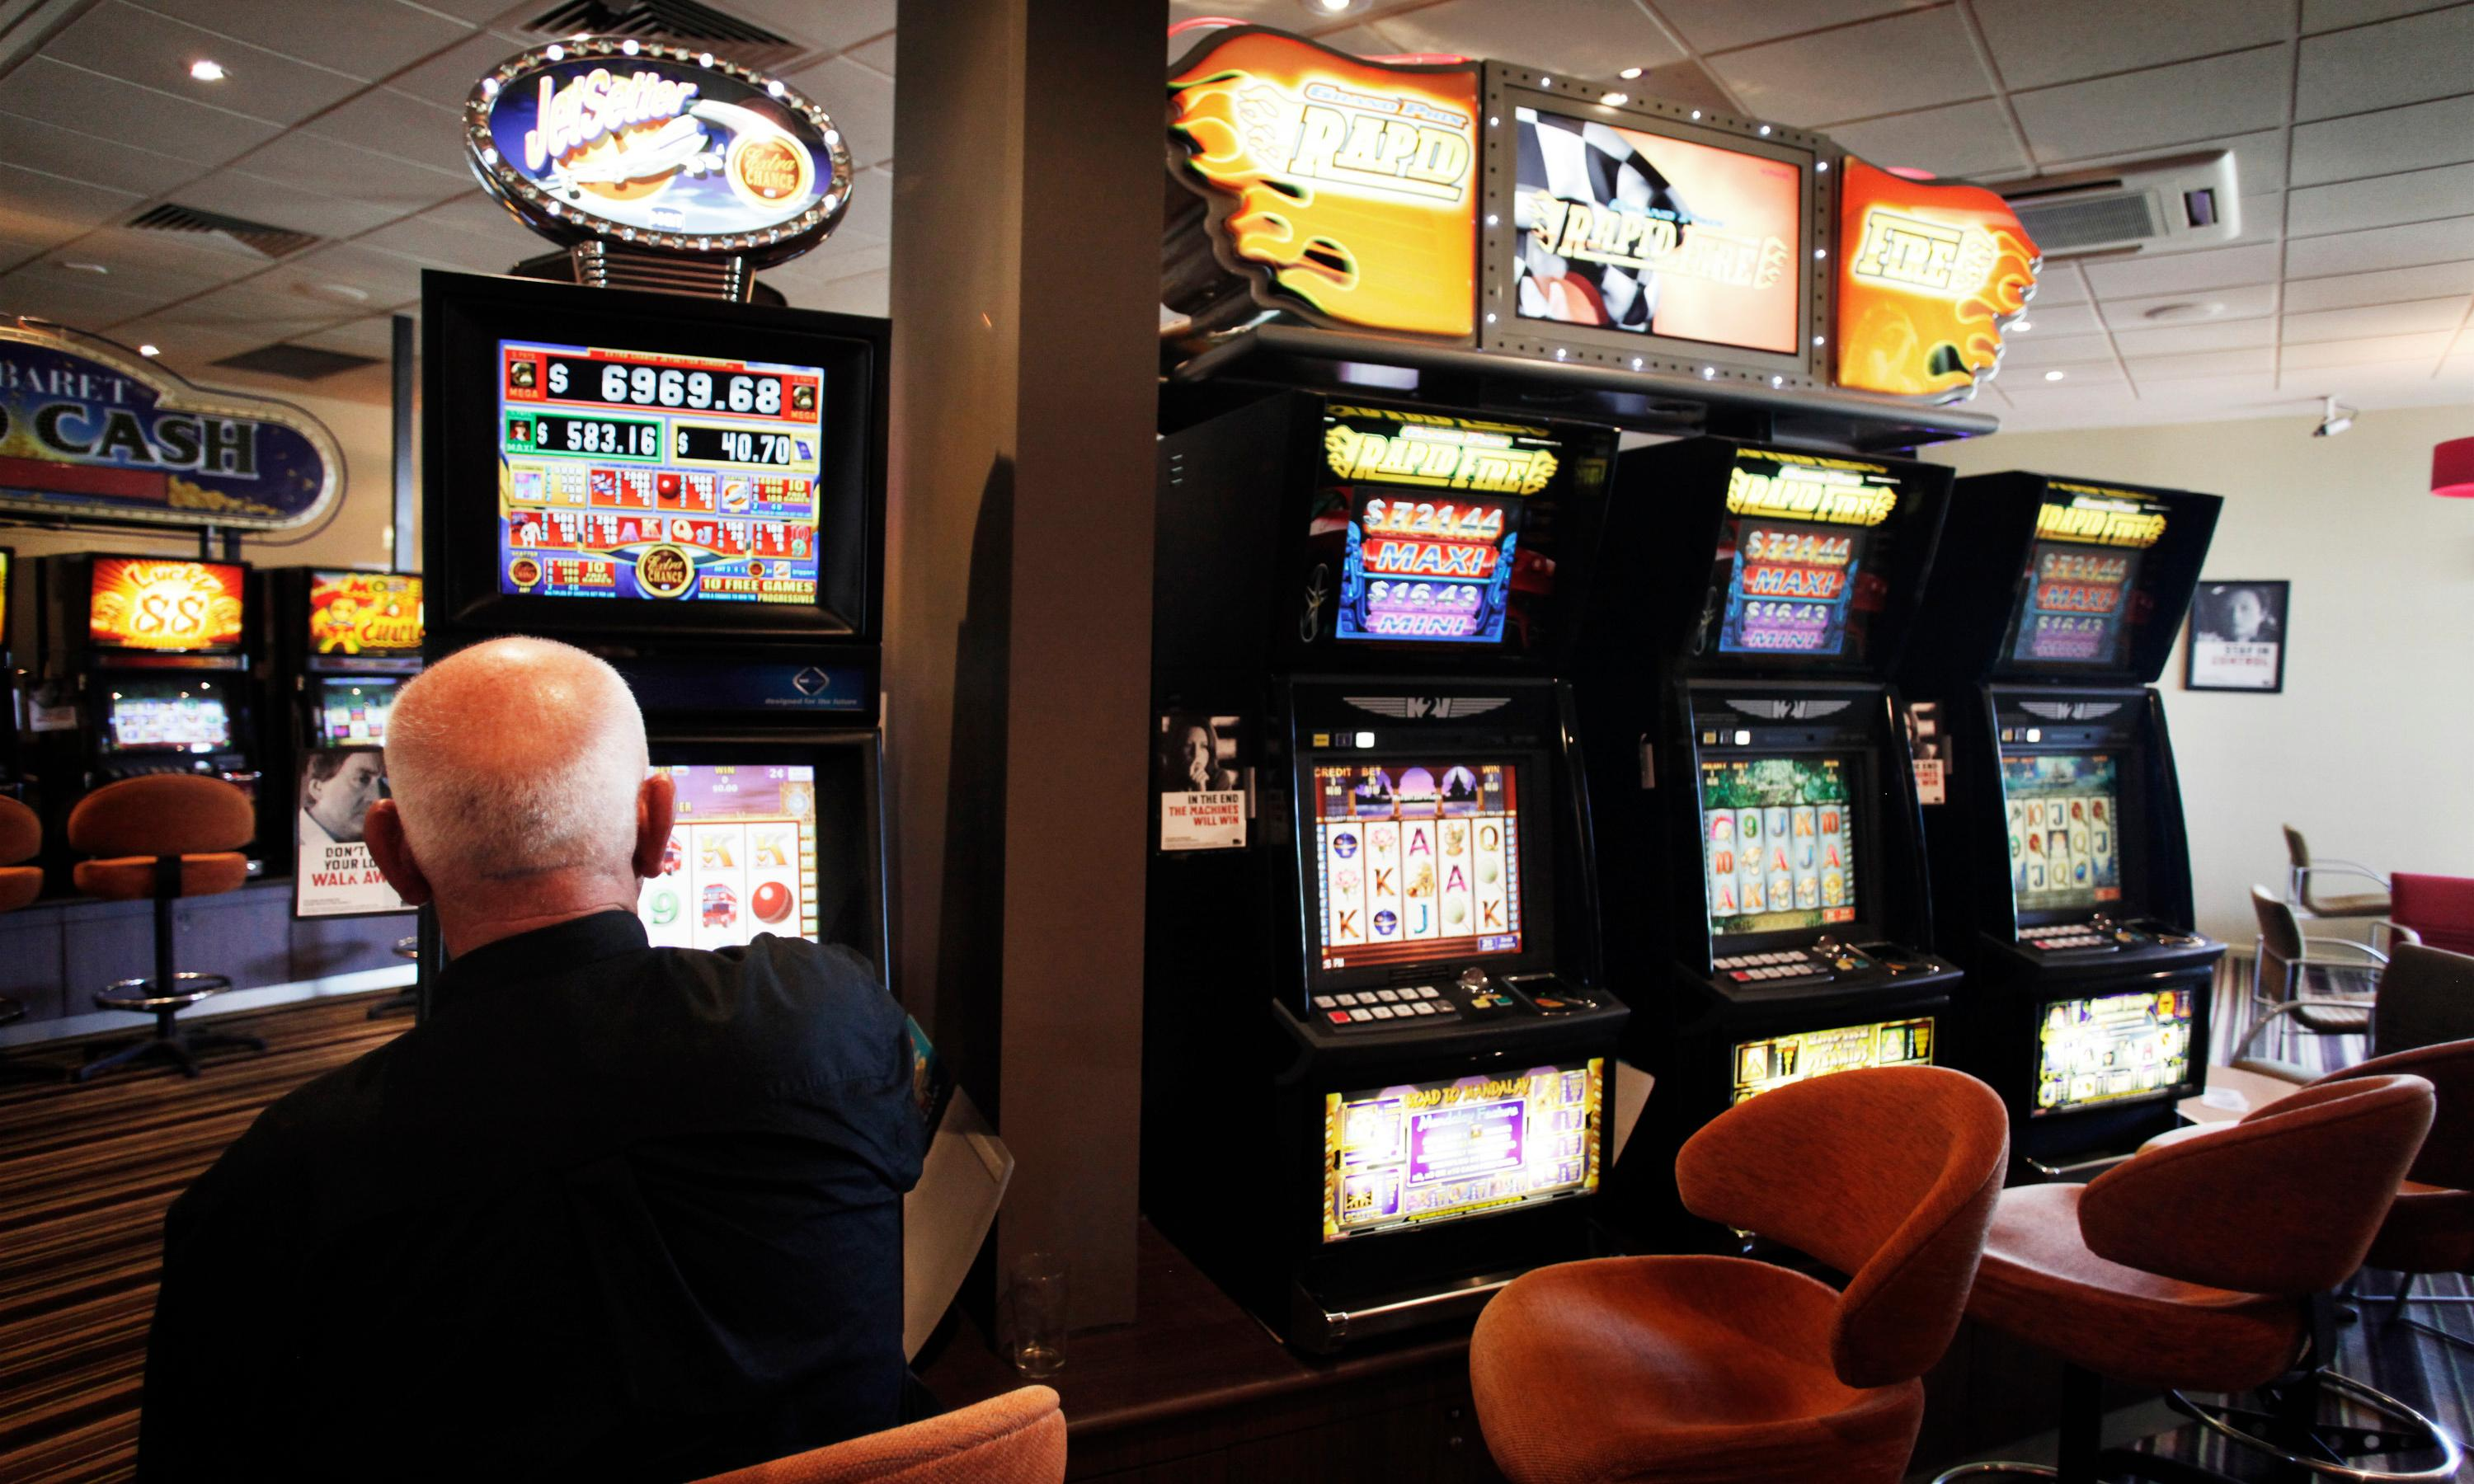 How much more gambling harm can we put up with? We need a royal commission